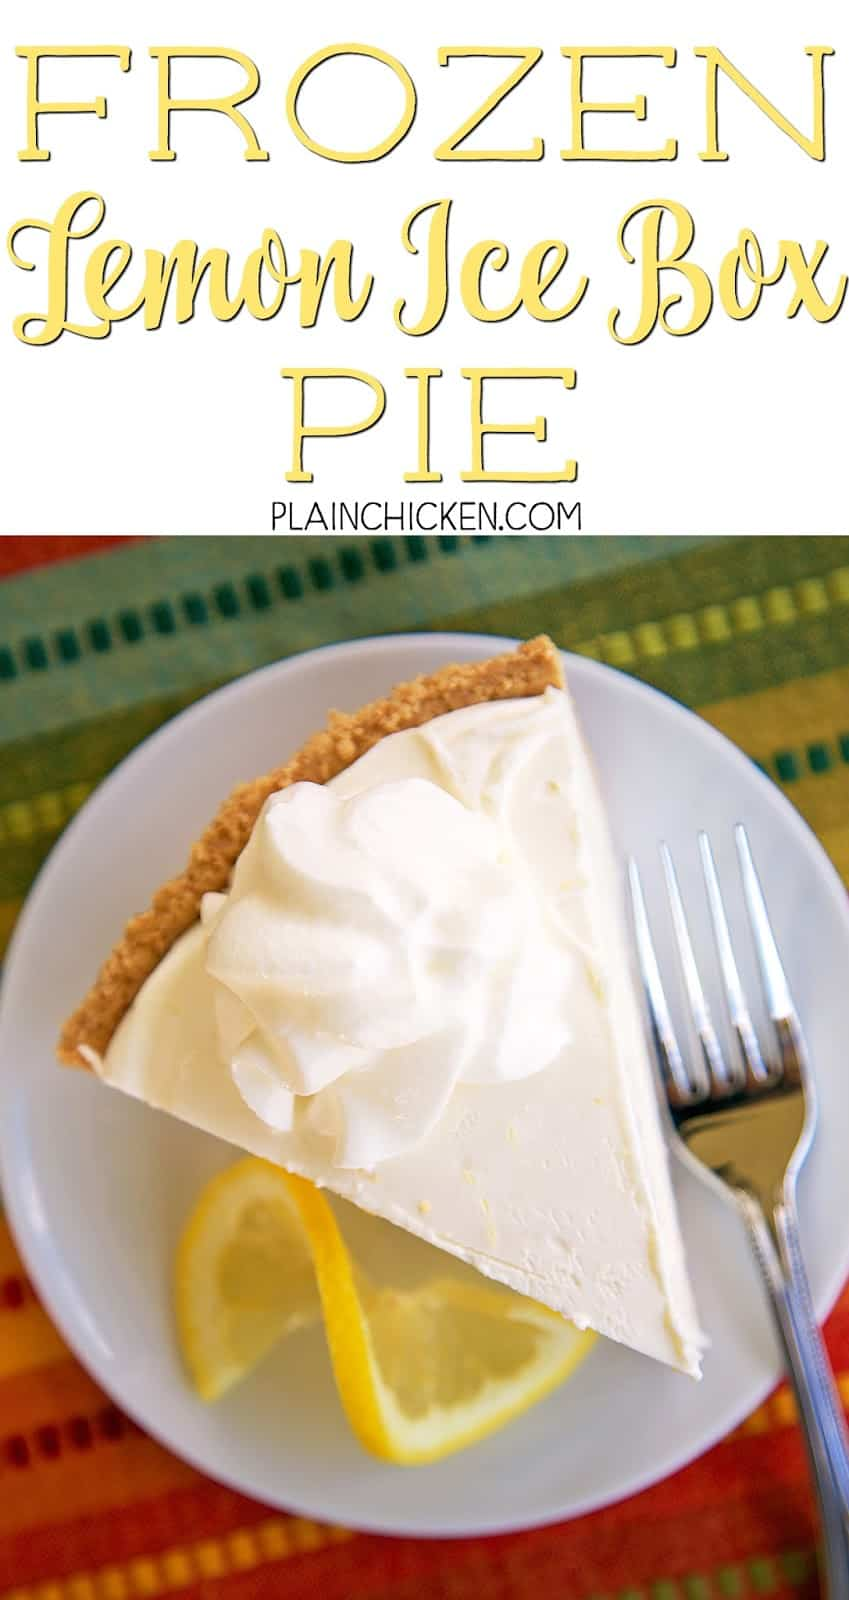 Frozen Lemon Ice Box Pie - only 4 ingredients! A store-bought graham cracker crust filled with a no churn lemon ice cream made with lemons, heavy cream and sweetened condensed milk. Only takes a minute to make and it tastes amazing! Fantastic lemon flavor! I made this for a party and it was gone in a flash! Everyone asked for the recipe!!